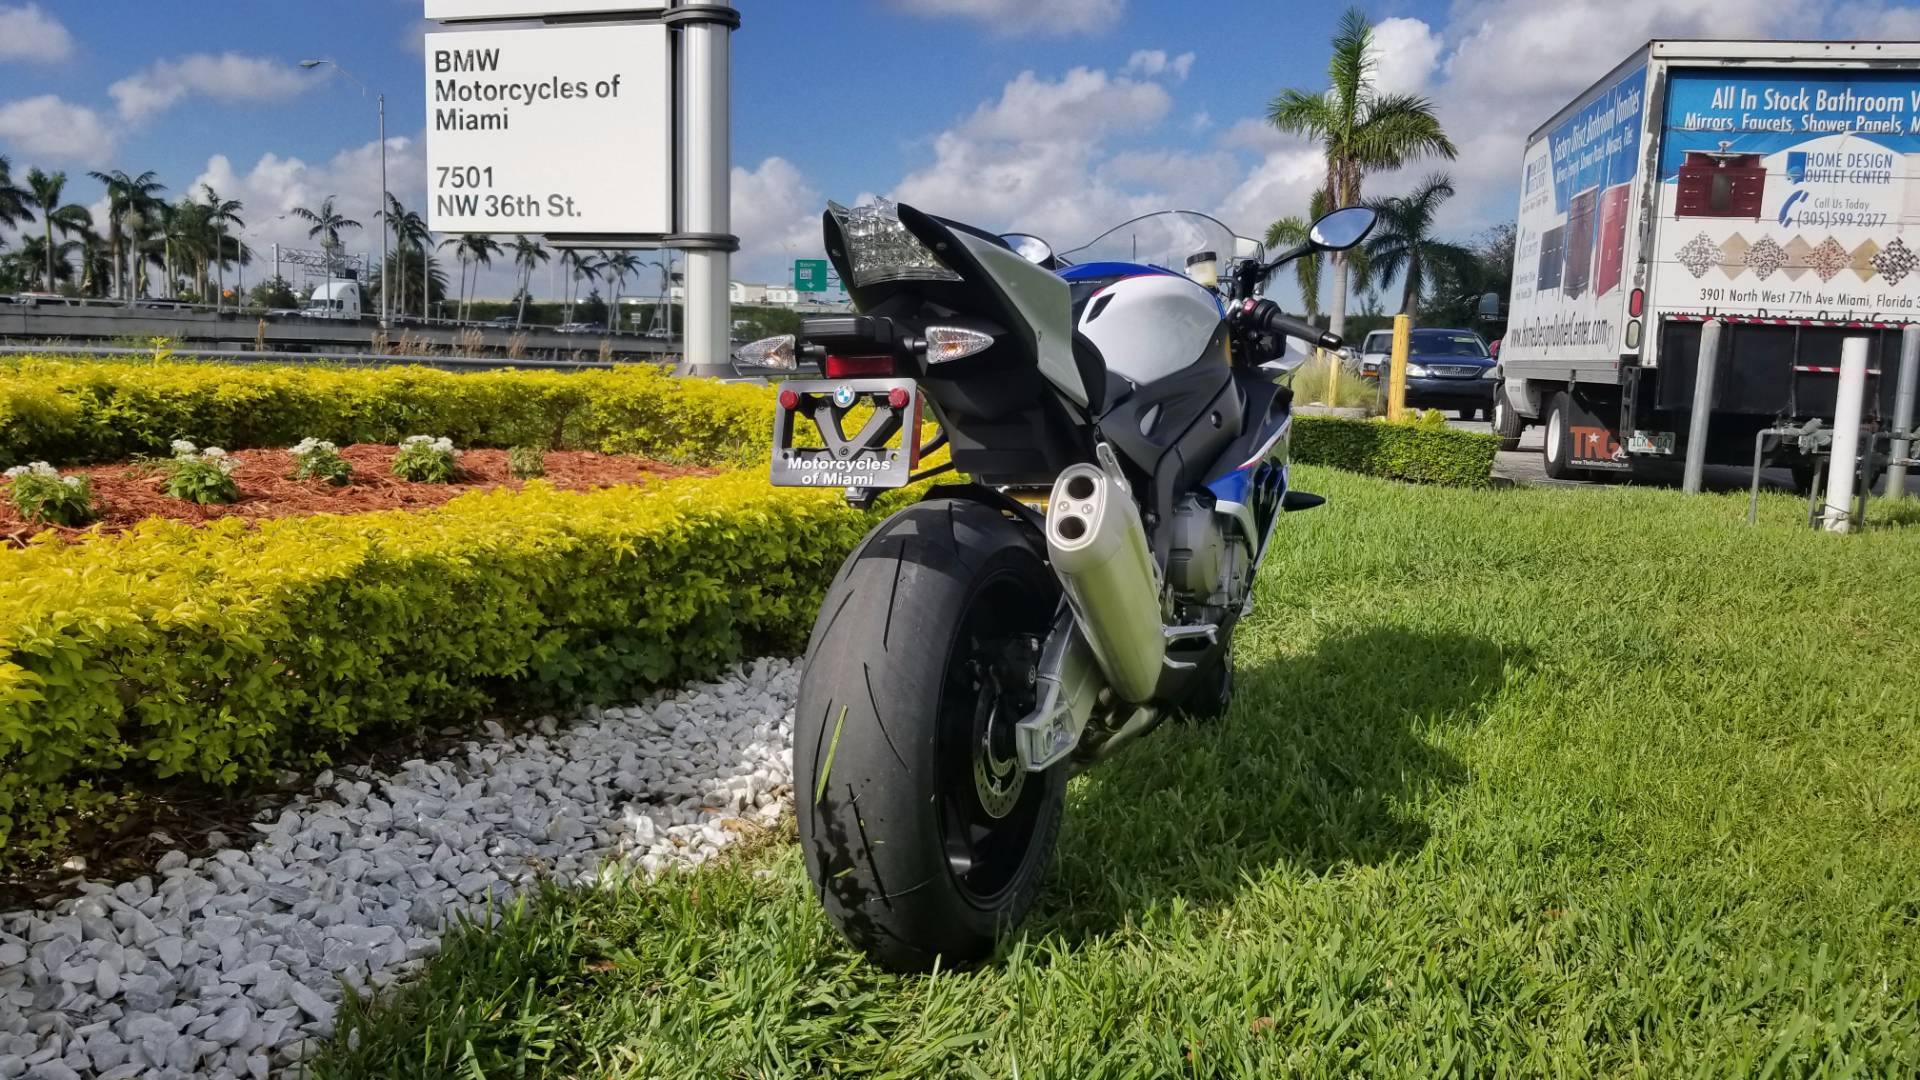 New 2018 BMW S 1000 RR Motorcycles in Miami, FL